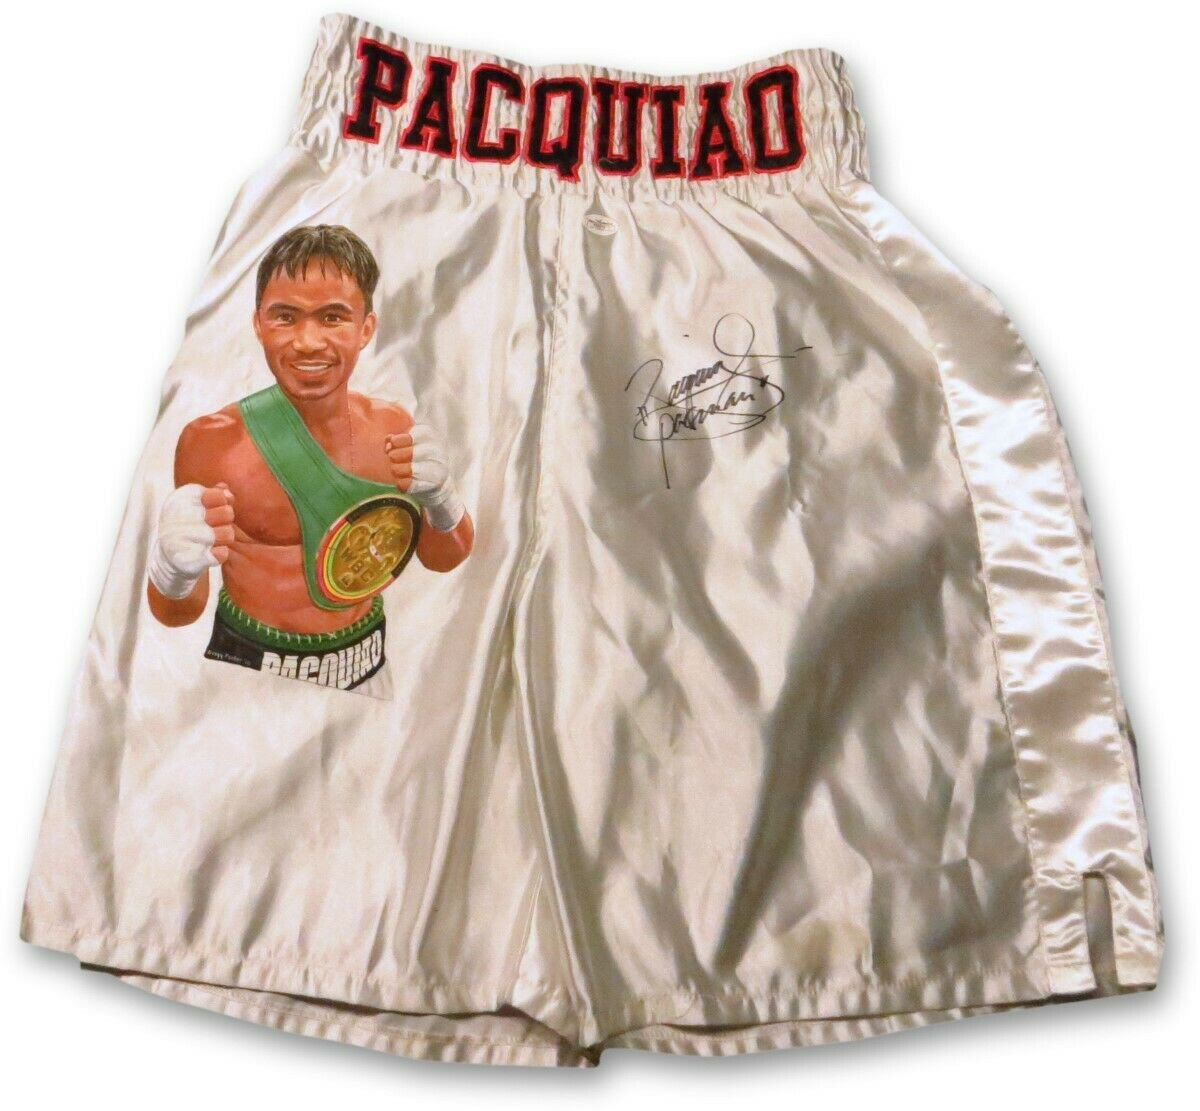 Manny Pacquiao Signed Autographed Custom Painted Boxing Trunks JSA